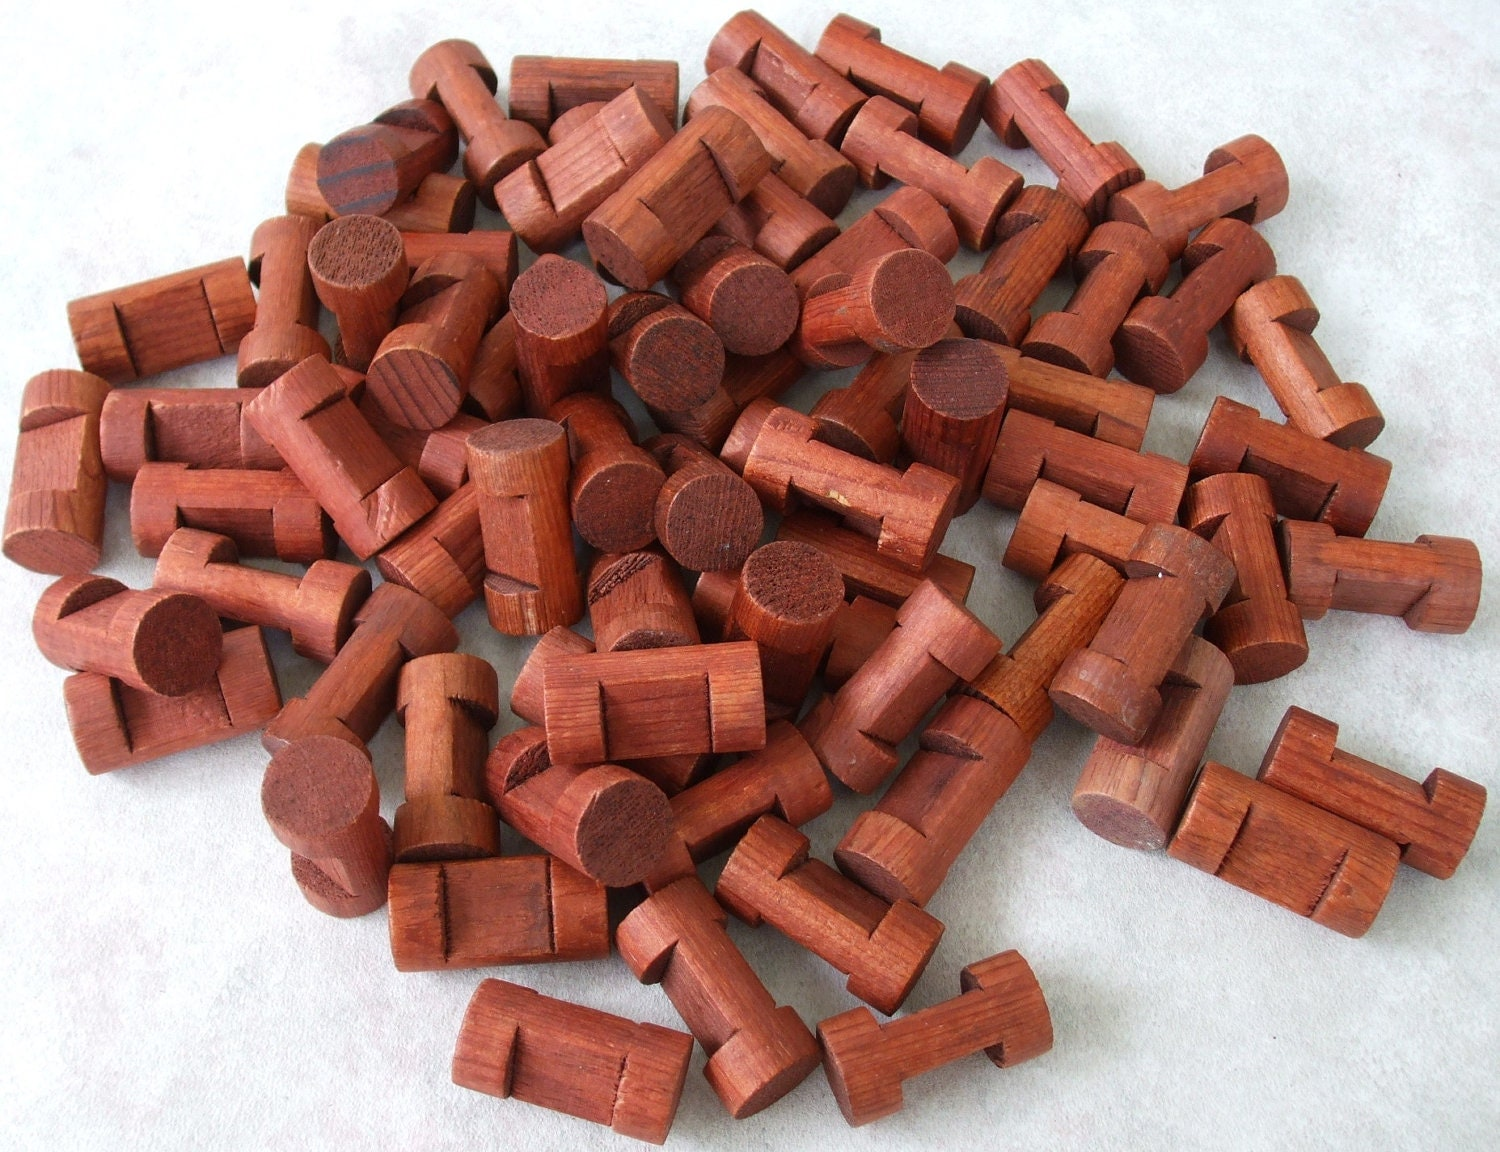 Vintage 1970s Lincoln Logs Building Toy 153 Pieces